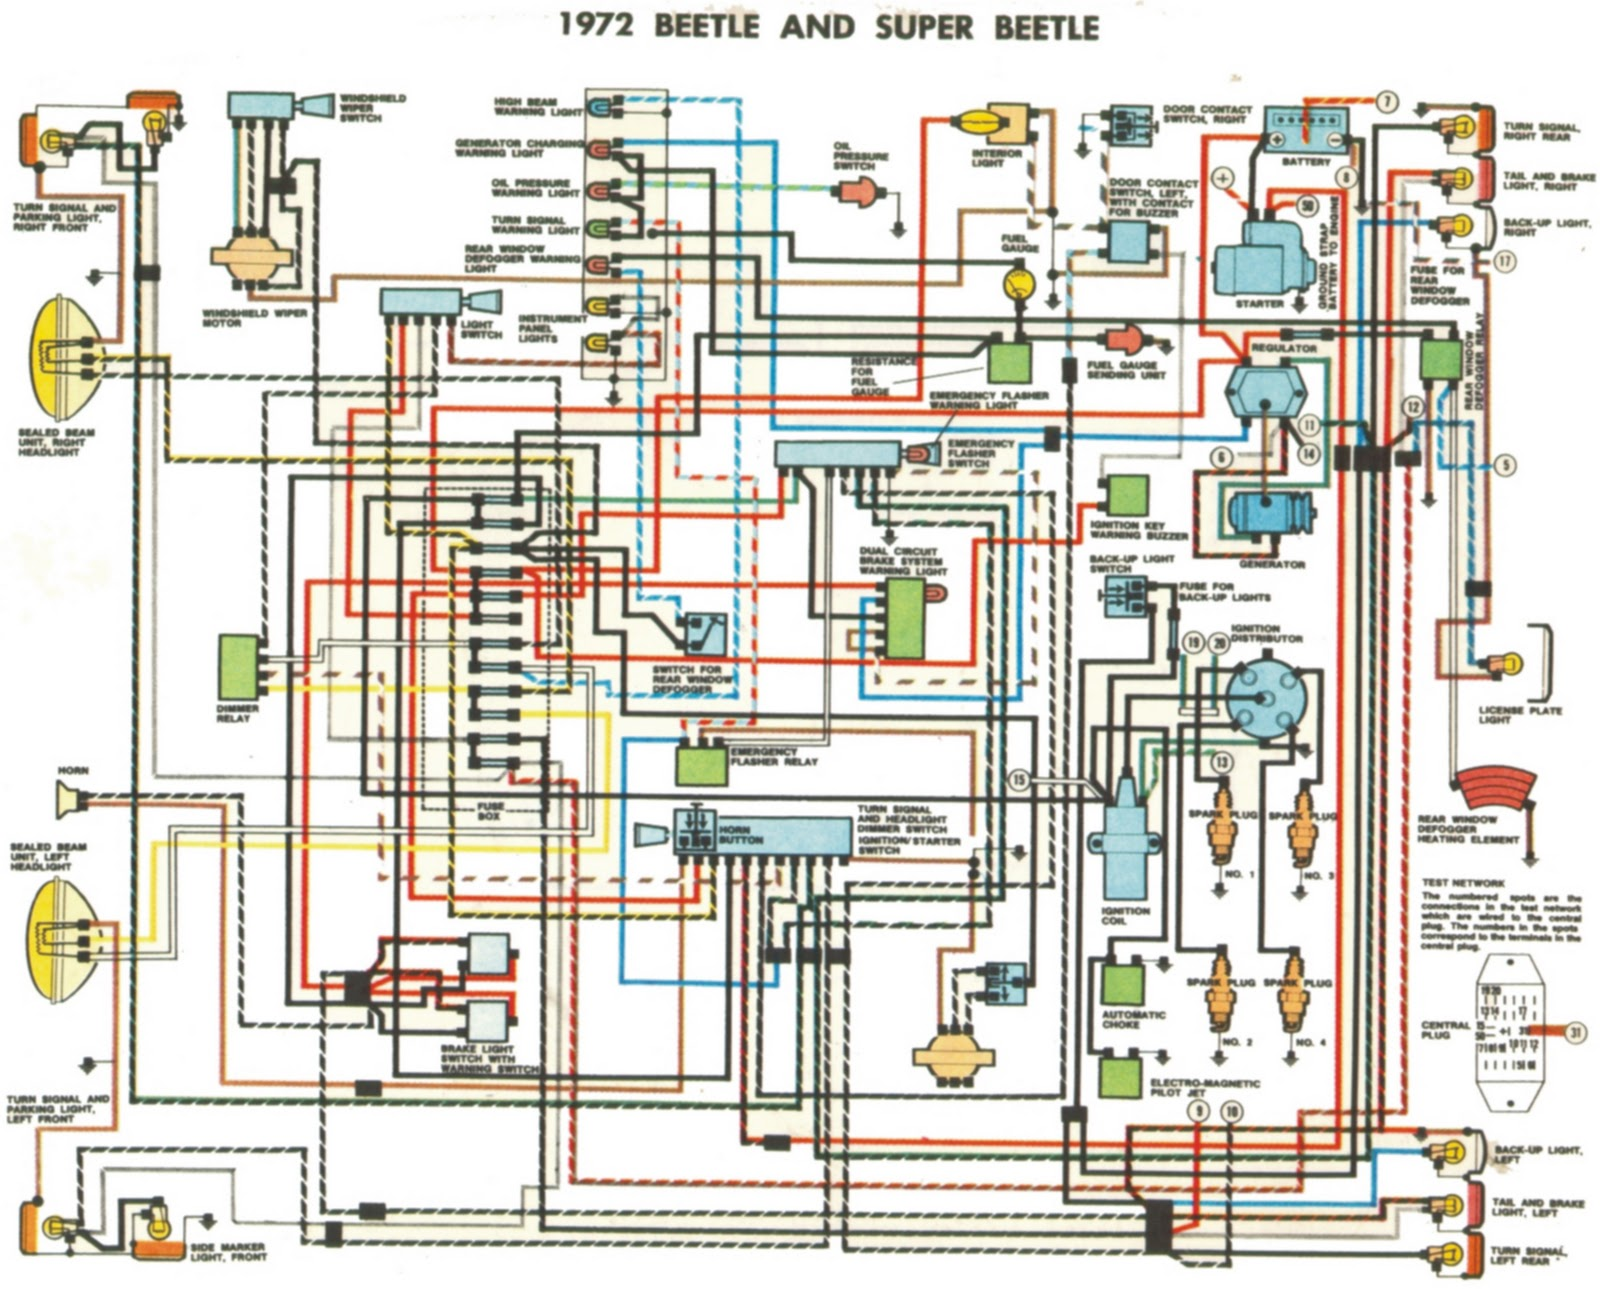 wiring diagrams galleries 2004 vw beetle convertible wiring diagram 2004 volkswagen beetle fuse diagram [ 1600 x 1289 Pixel ]